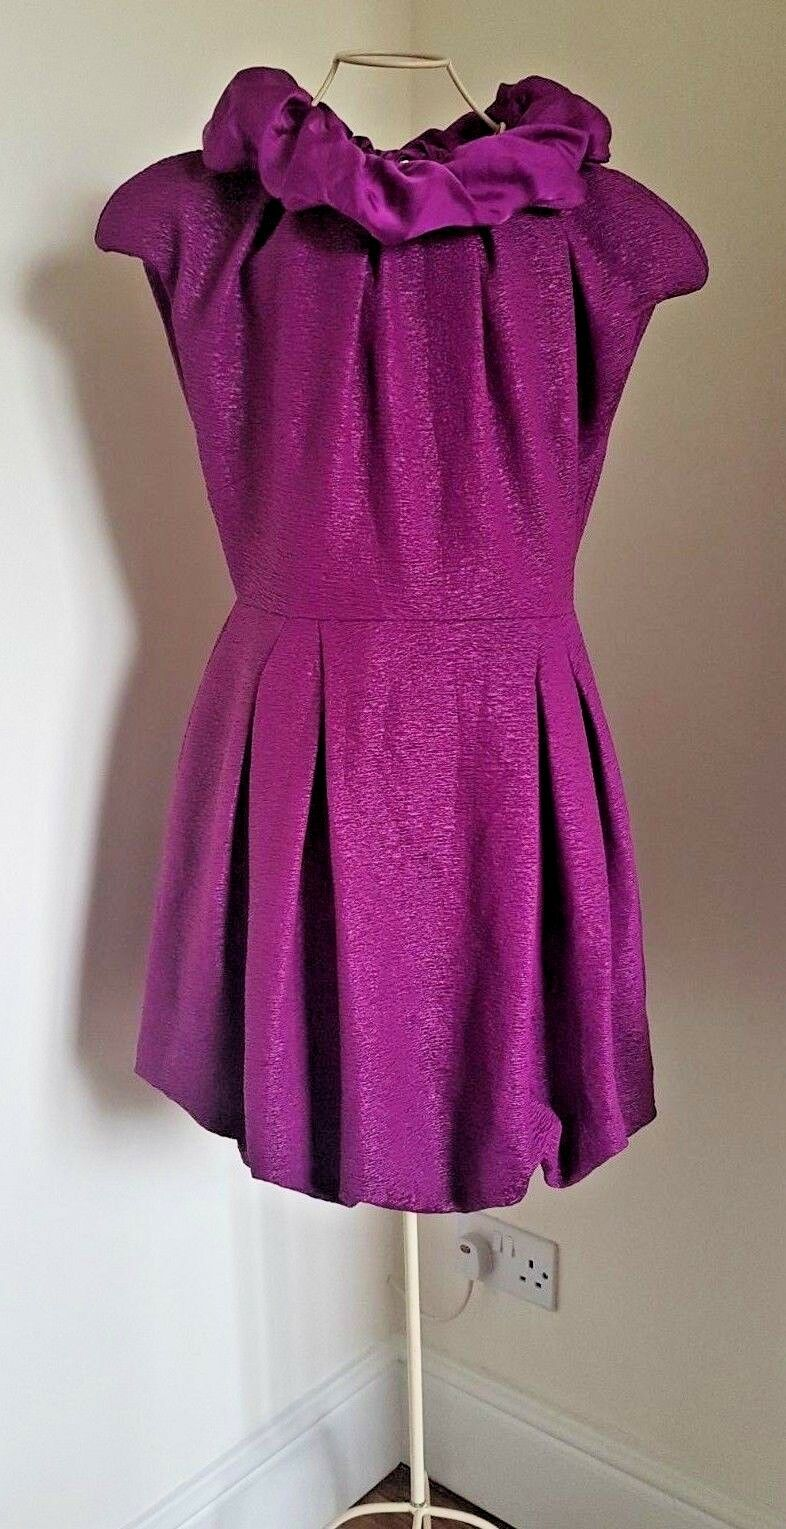 F&F Couture   Magneta Purple Dress  Size 14  New with Tags  Gorgeous